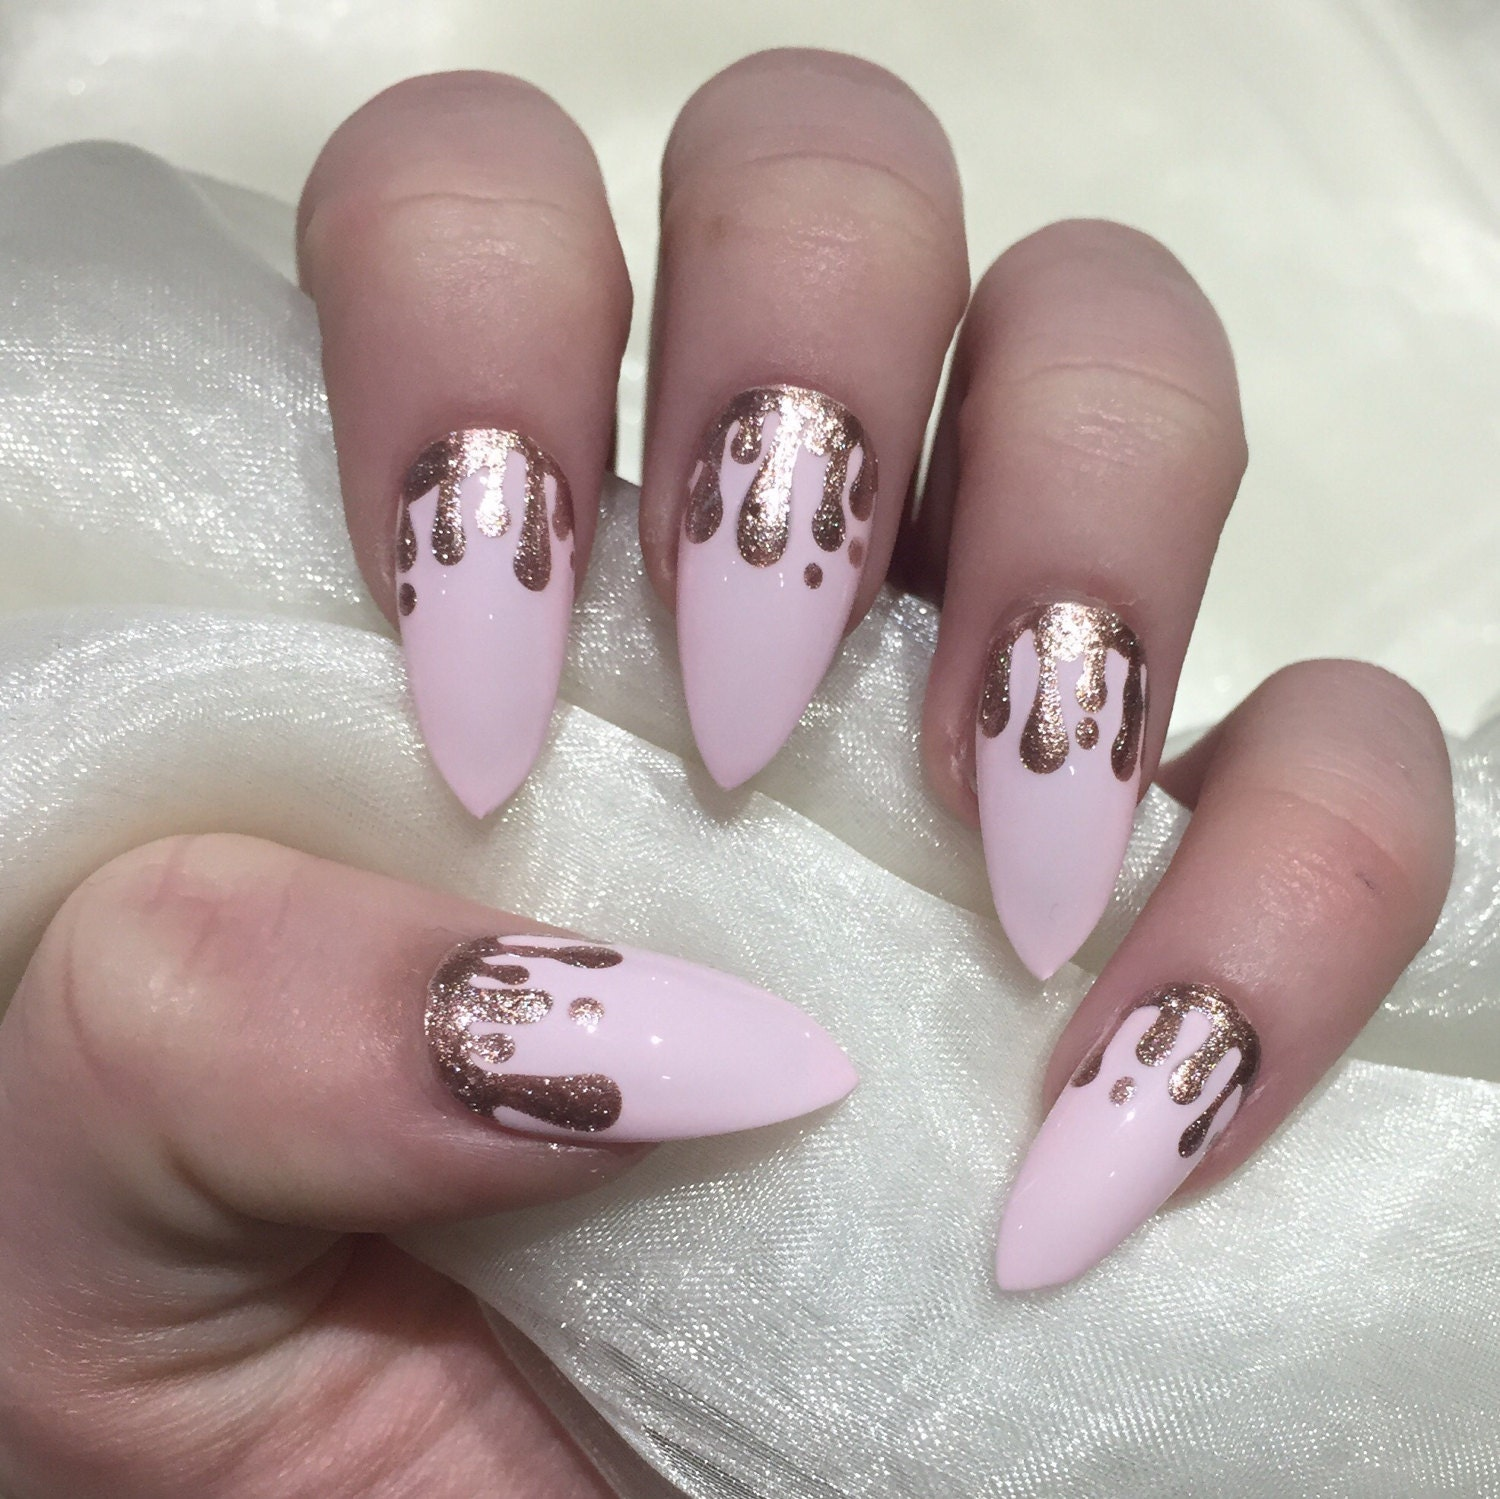 Baby pink stiletto false nails with rose gold glitter drip